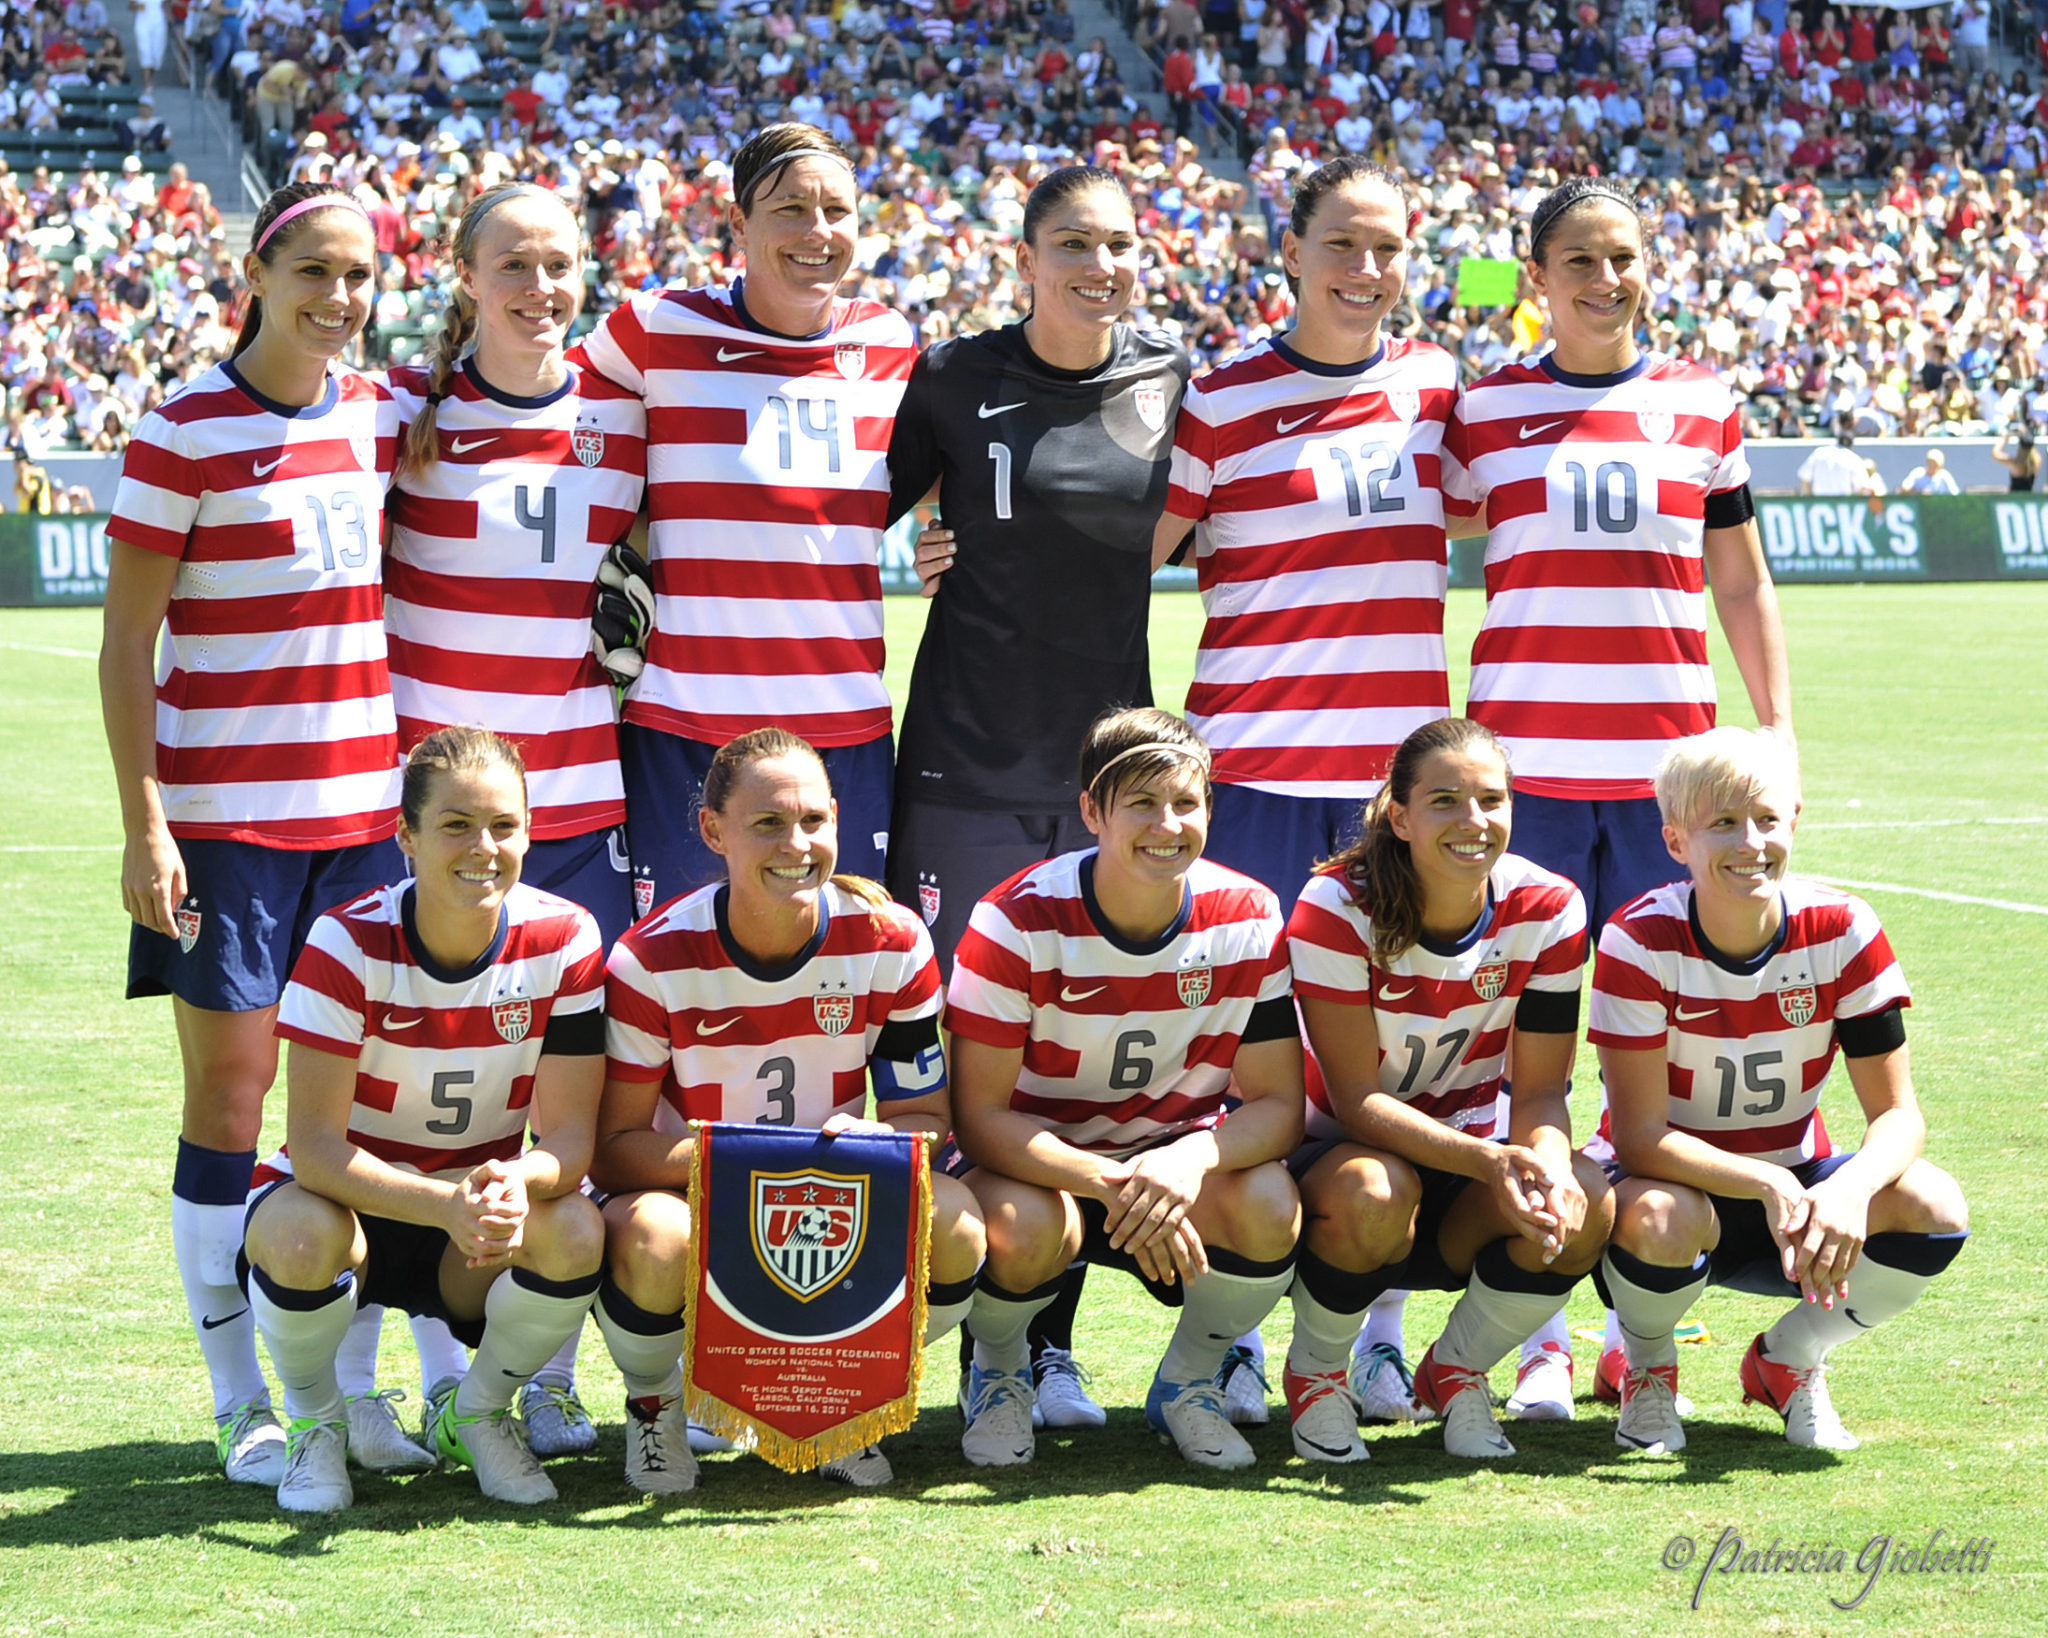 The U.S. starters before a 2-1 win over Australia on Sept. 16, 2012. (Copyright Patricia Giobetti | http://www.printroom.com/pro/psgiobetti)